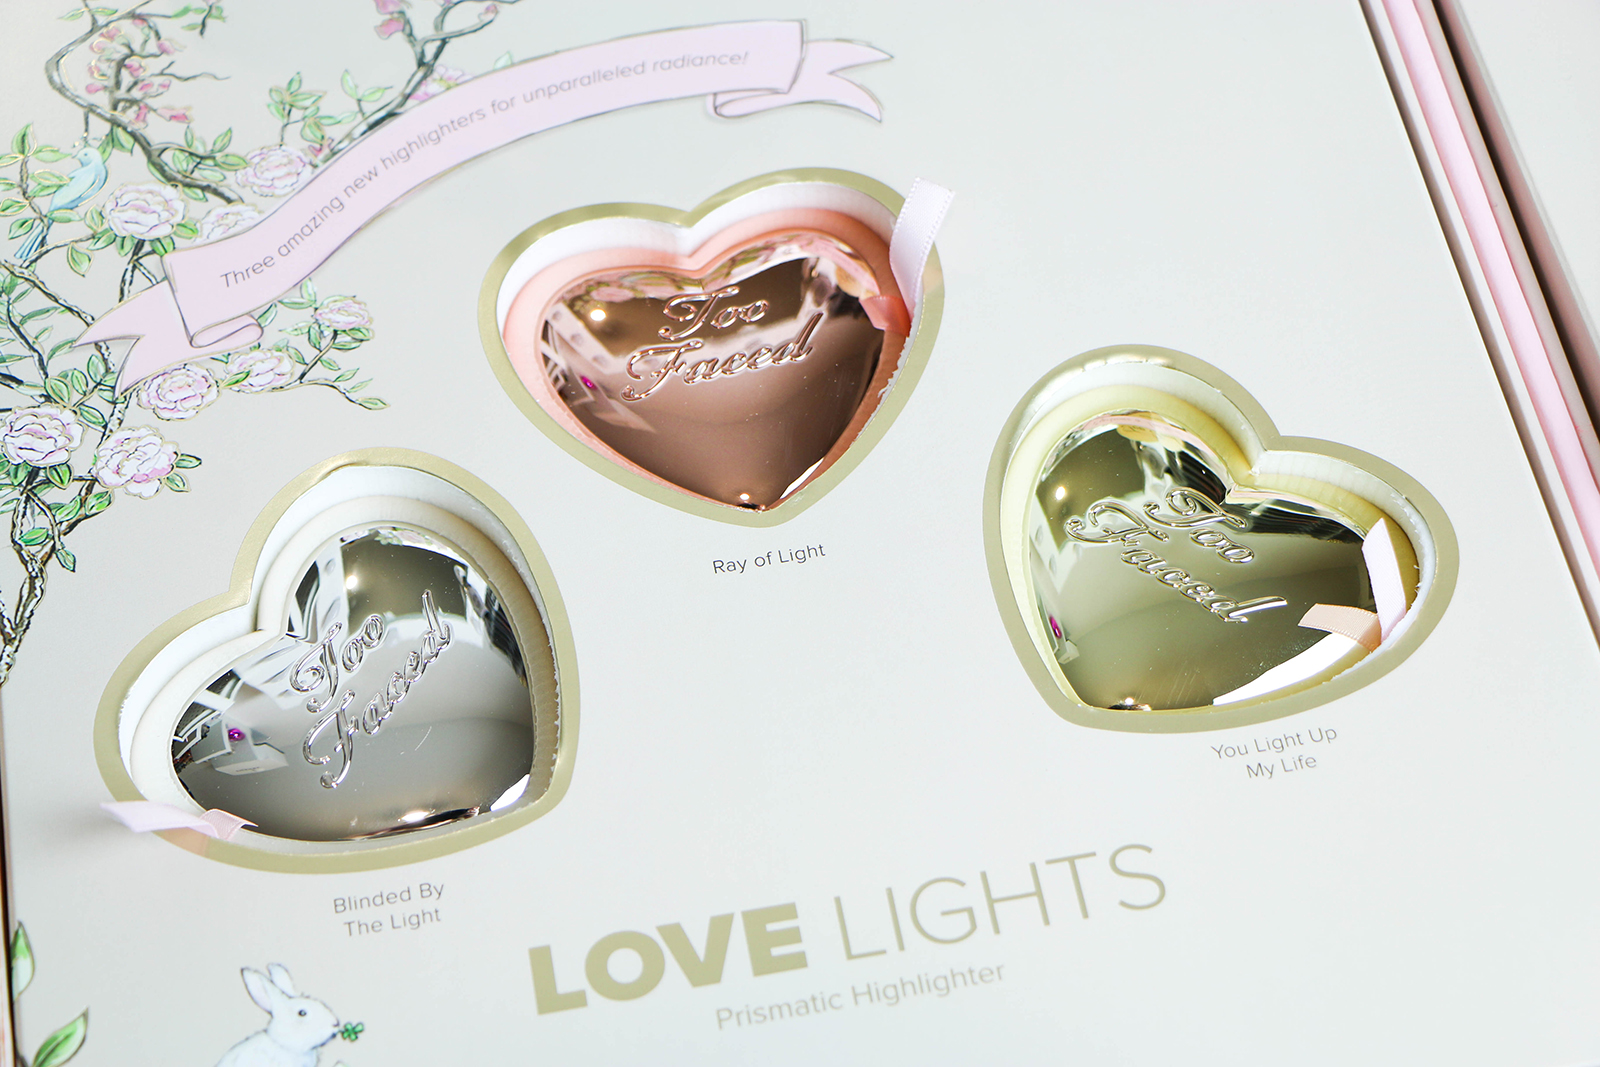 Too Faced Love Light Enlumineur_6